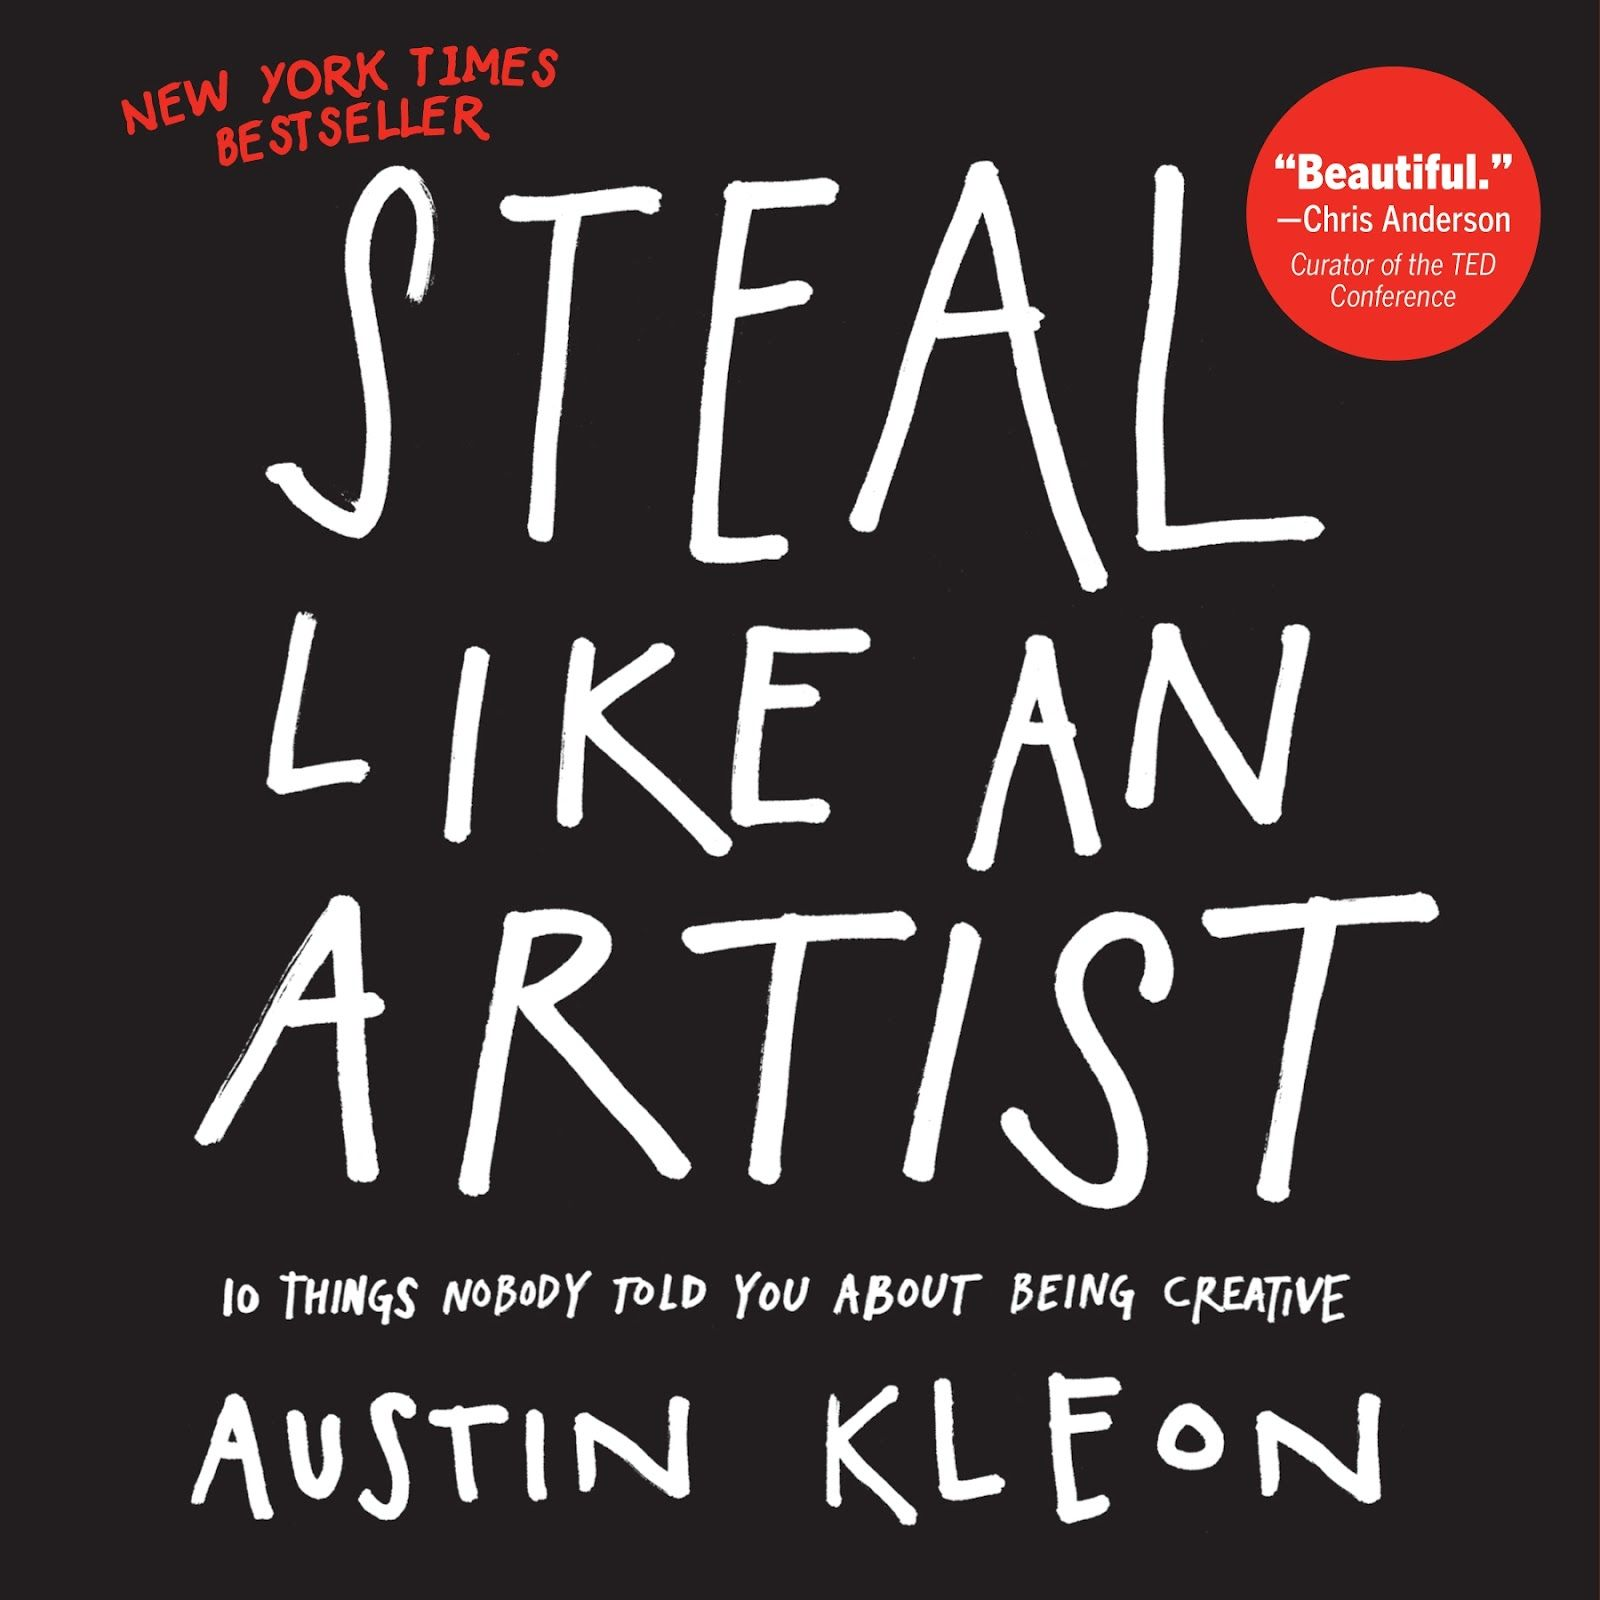 ROBA COMO UN ARTISTA AUSTIN KLEON DOWNLOAD